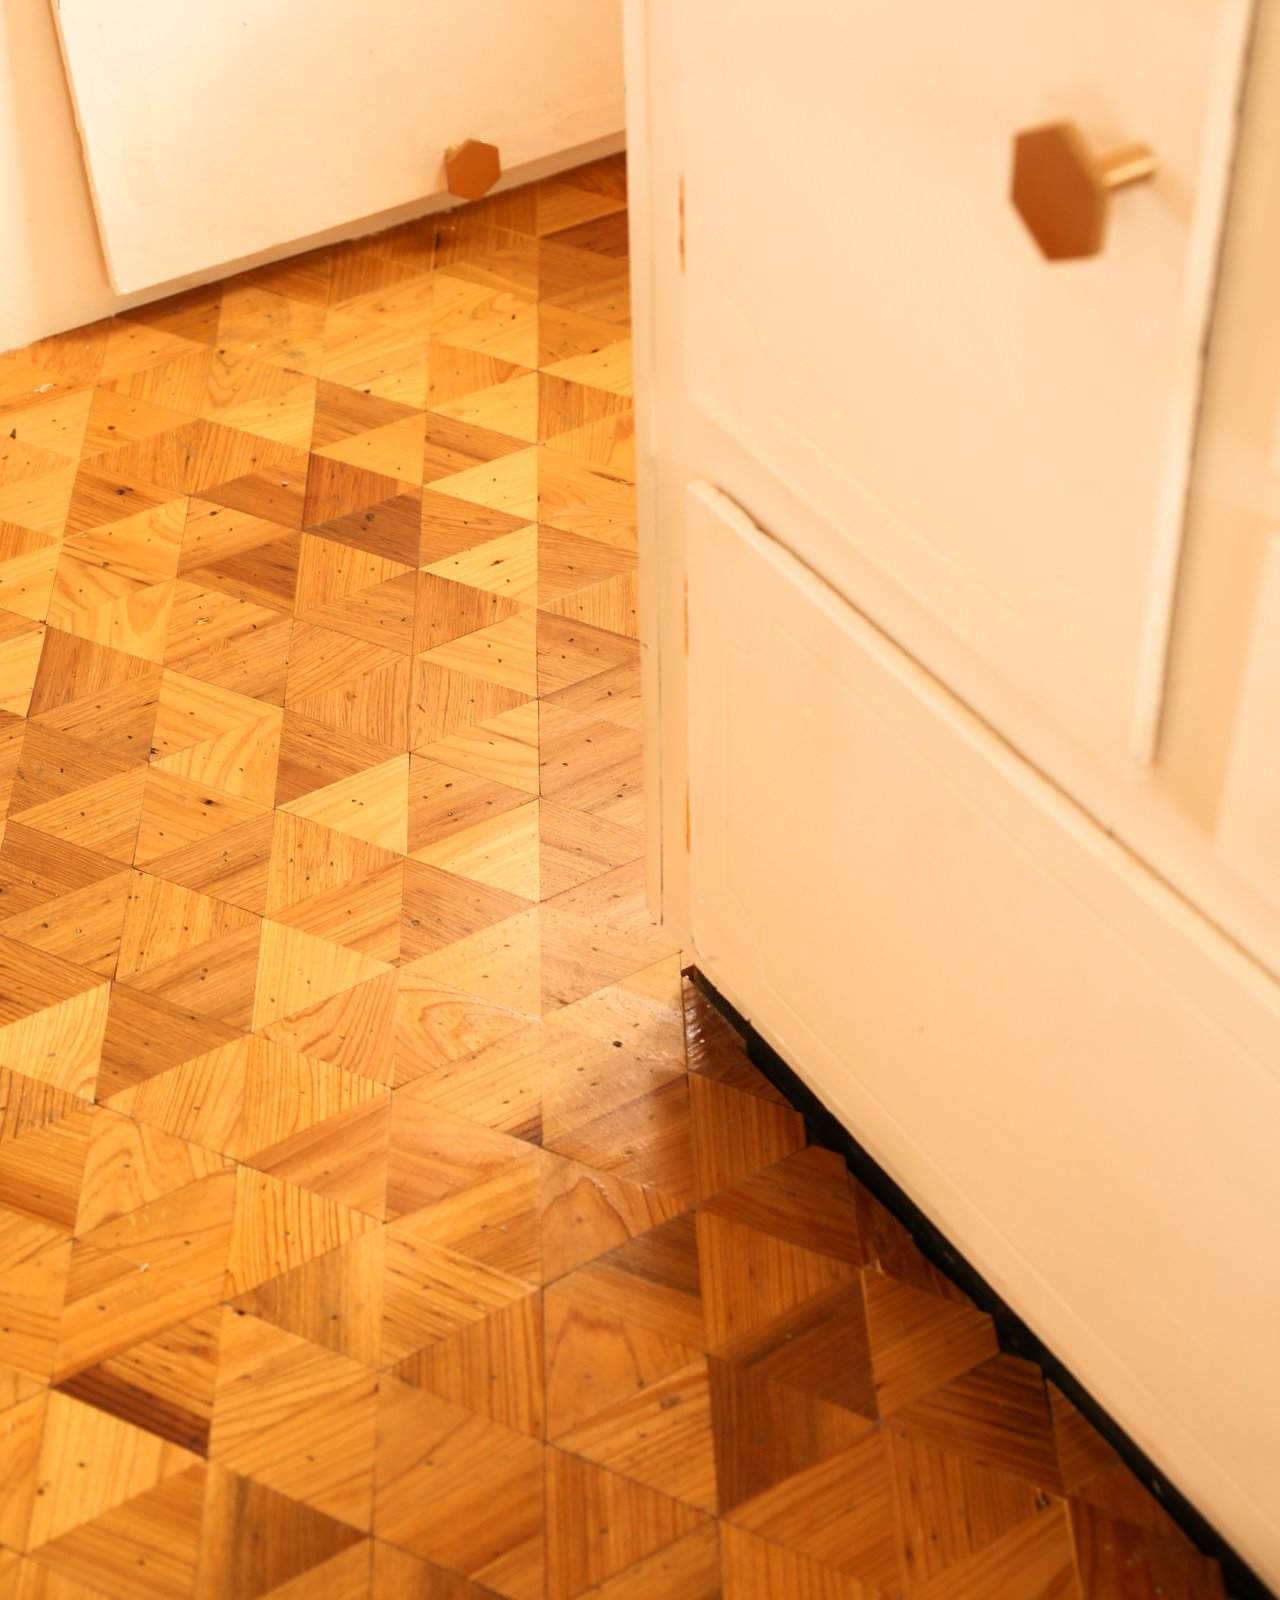 For the jaw-dropping, 40-square-foot floor makeover, peel-and-stick tile was traded for a mosaic of 3-inch wood triangles cut from reclaimed Cypress.